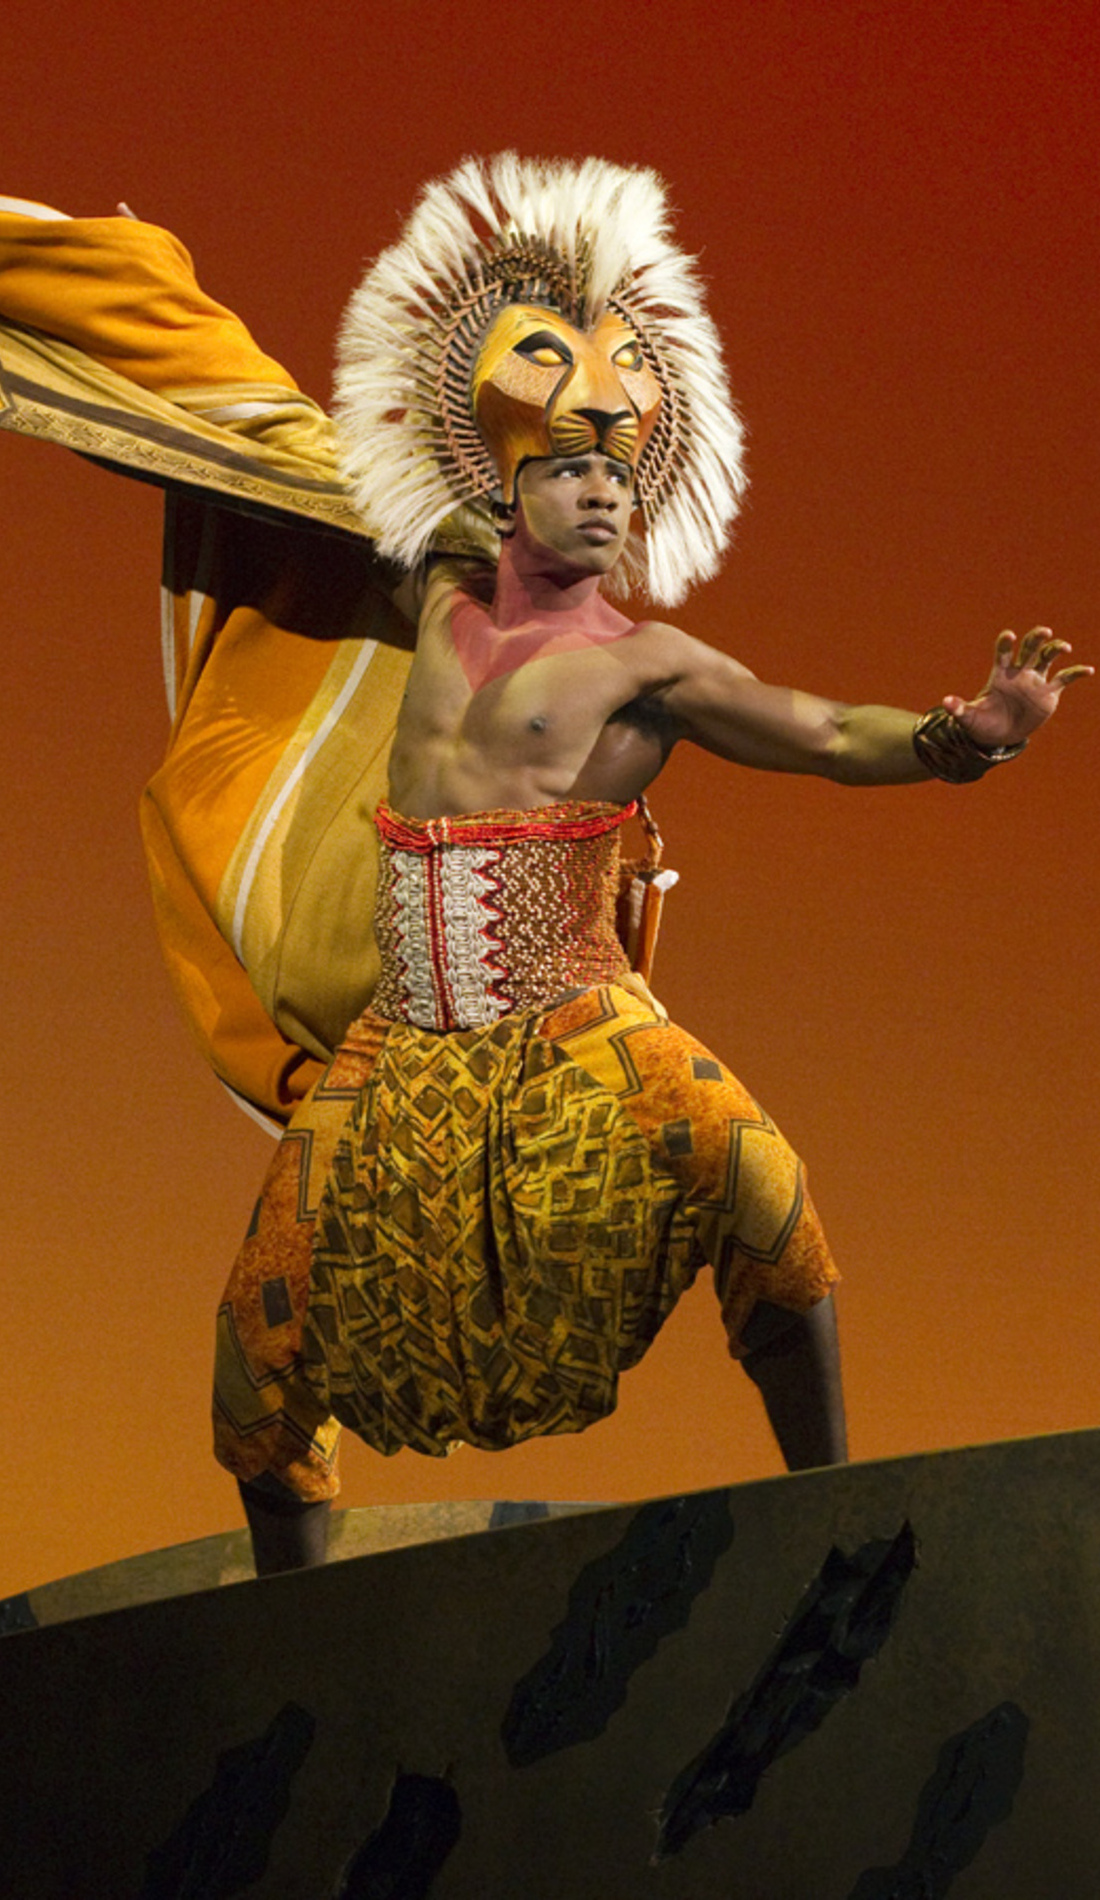 A The Lion King live event